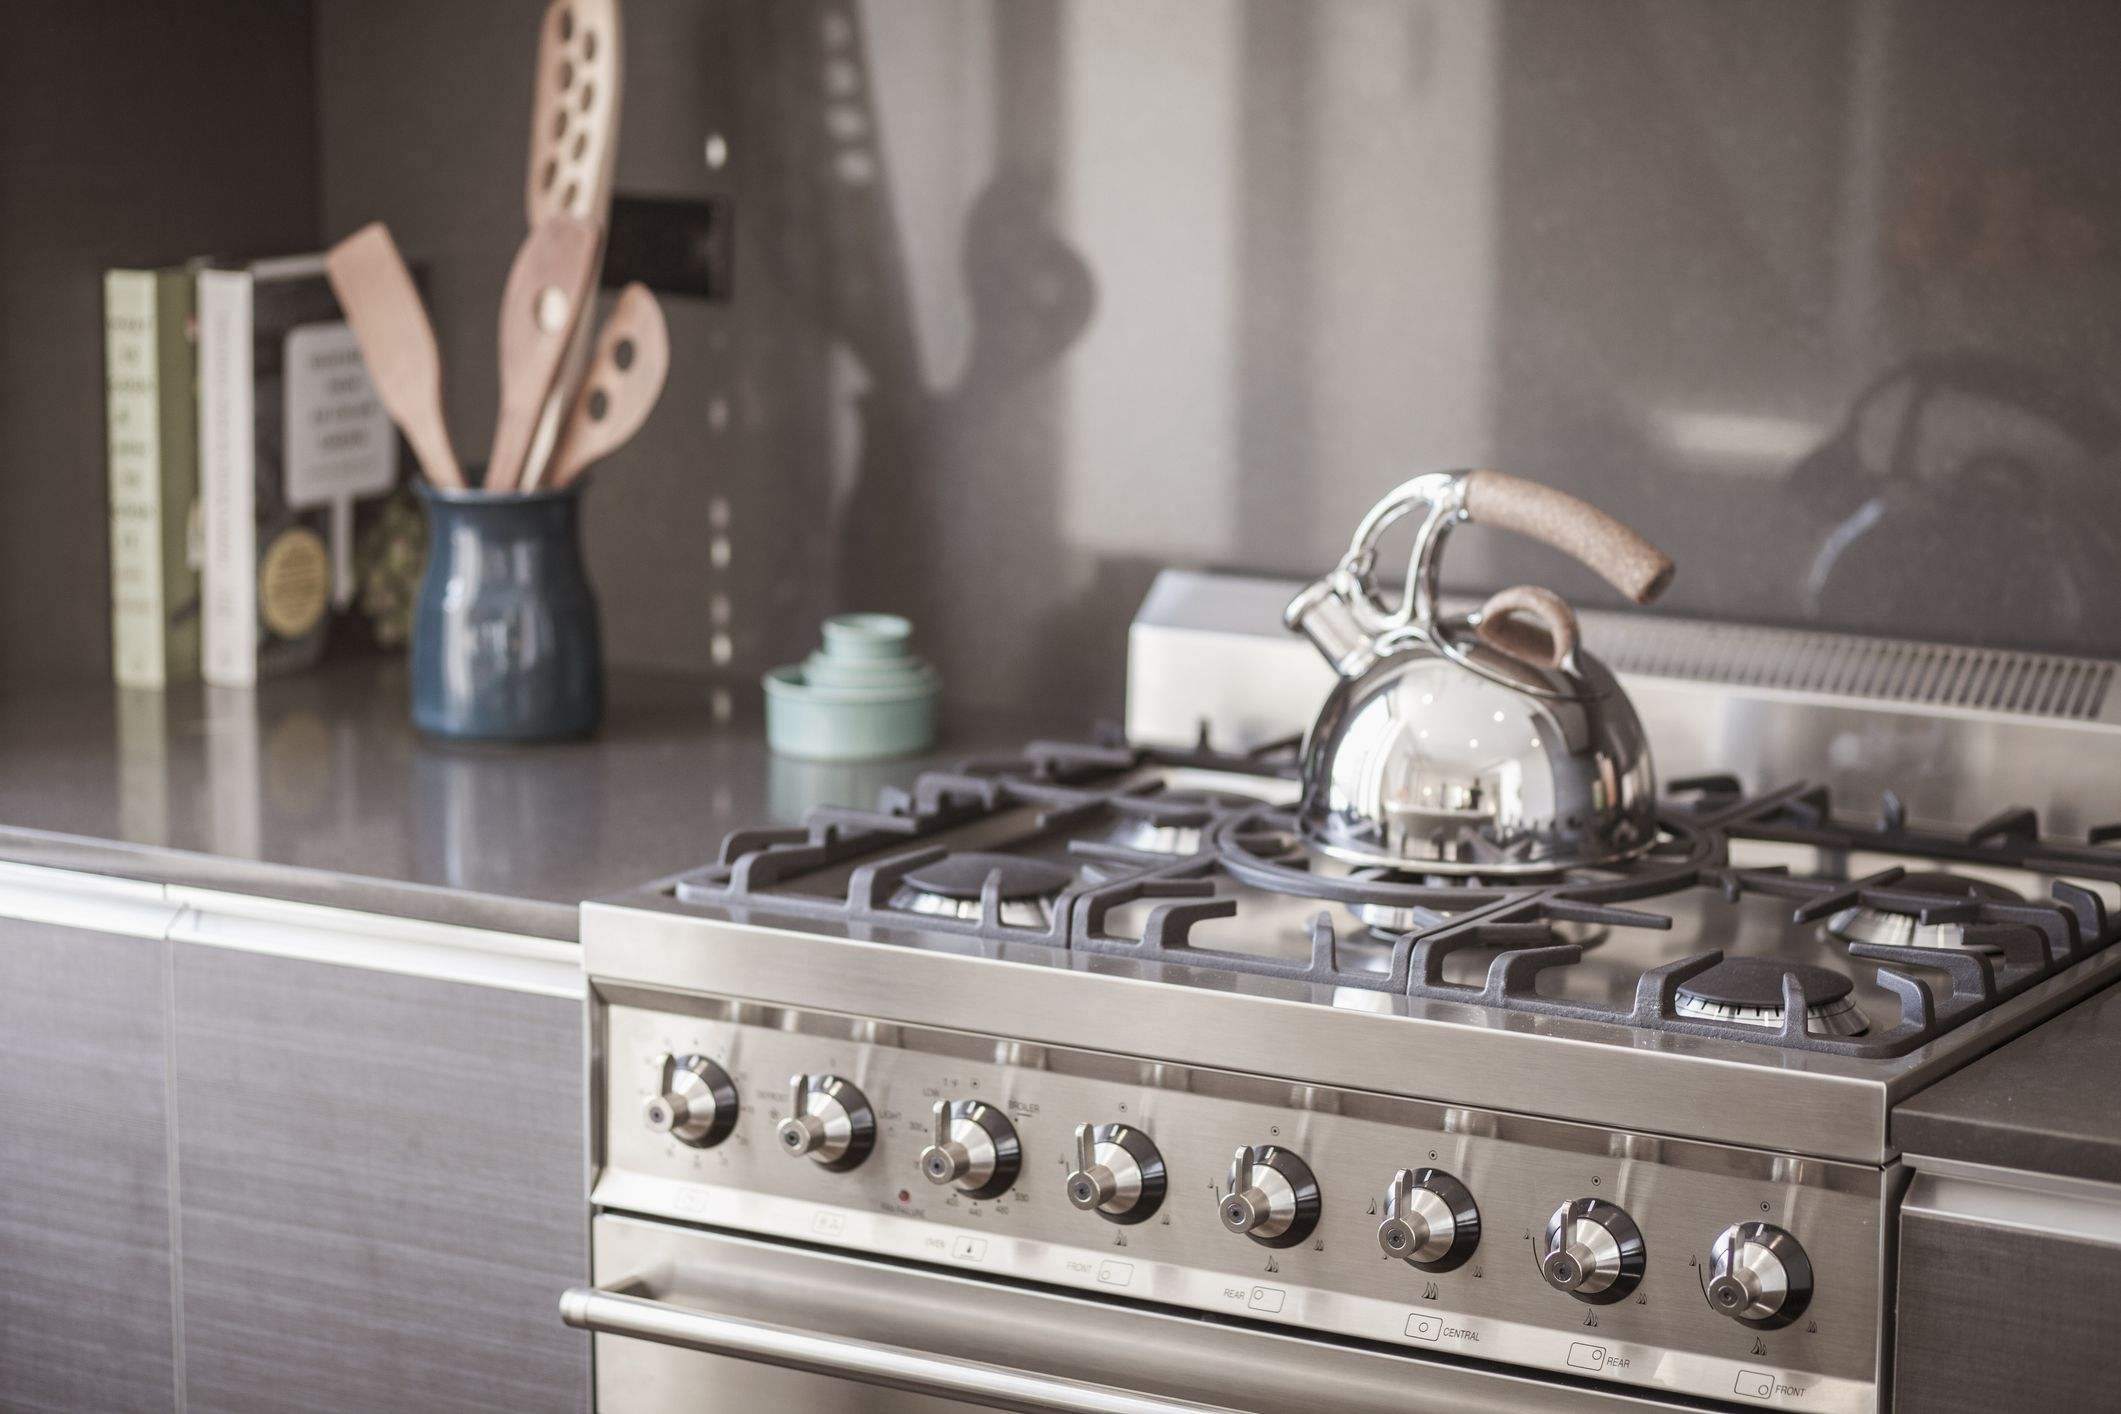 basic methods to clean stainless steel